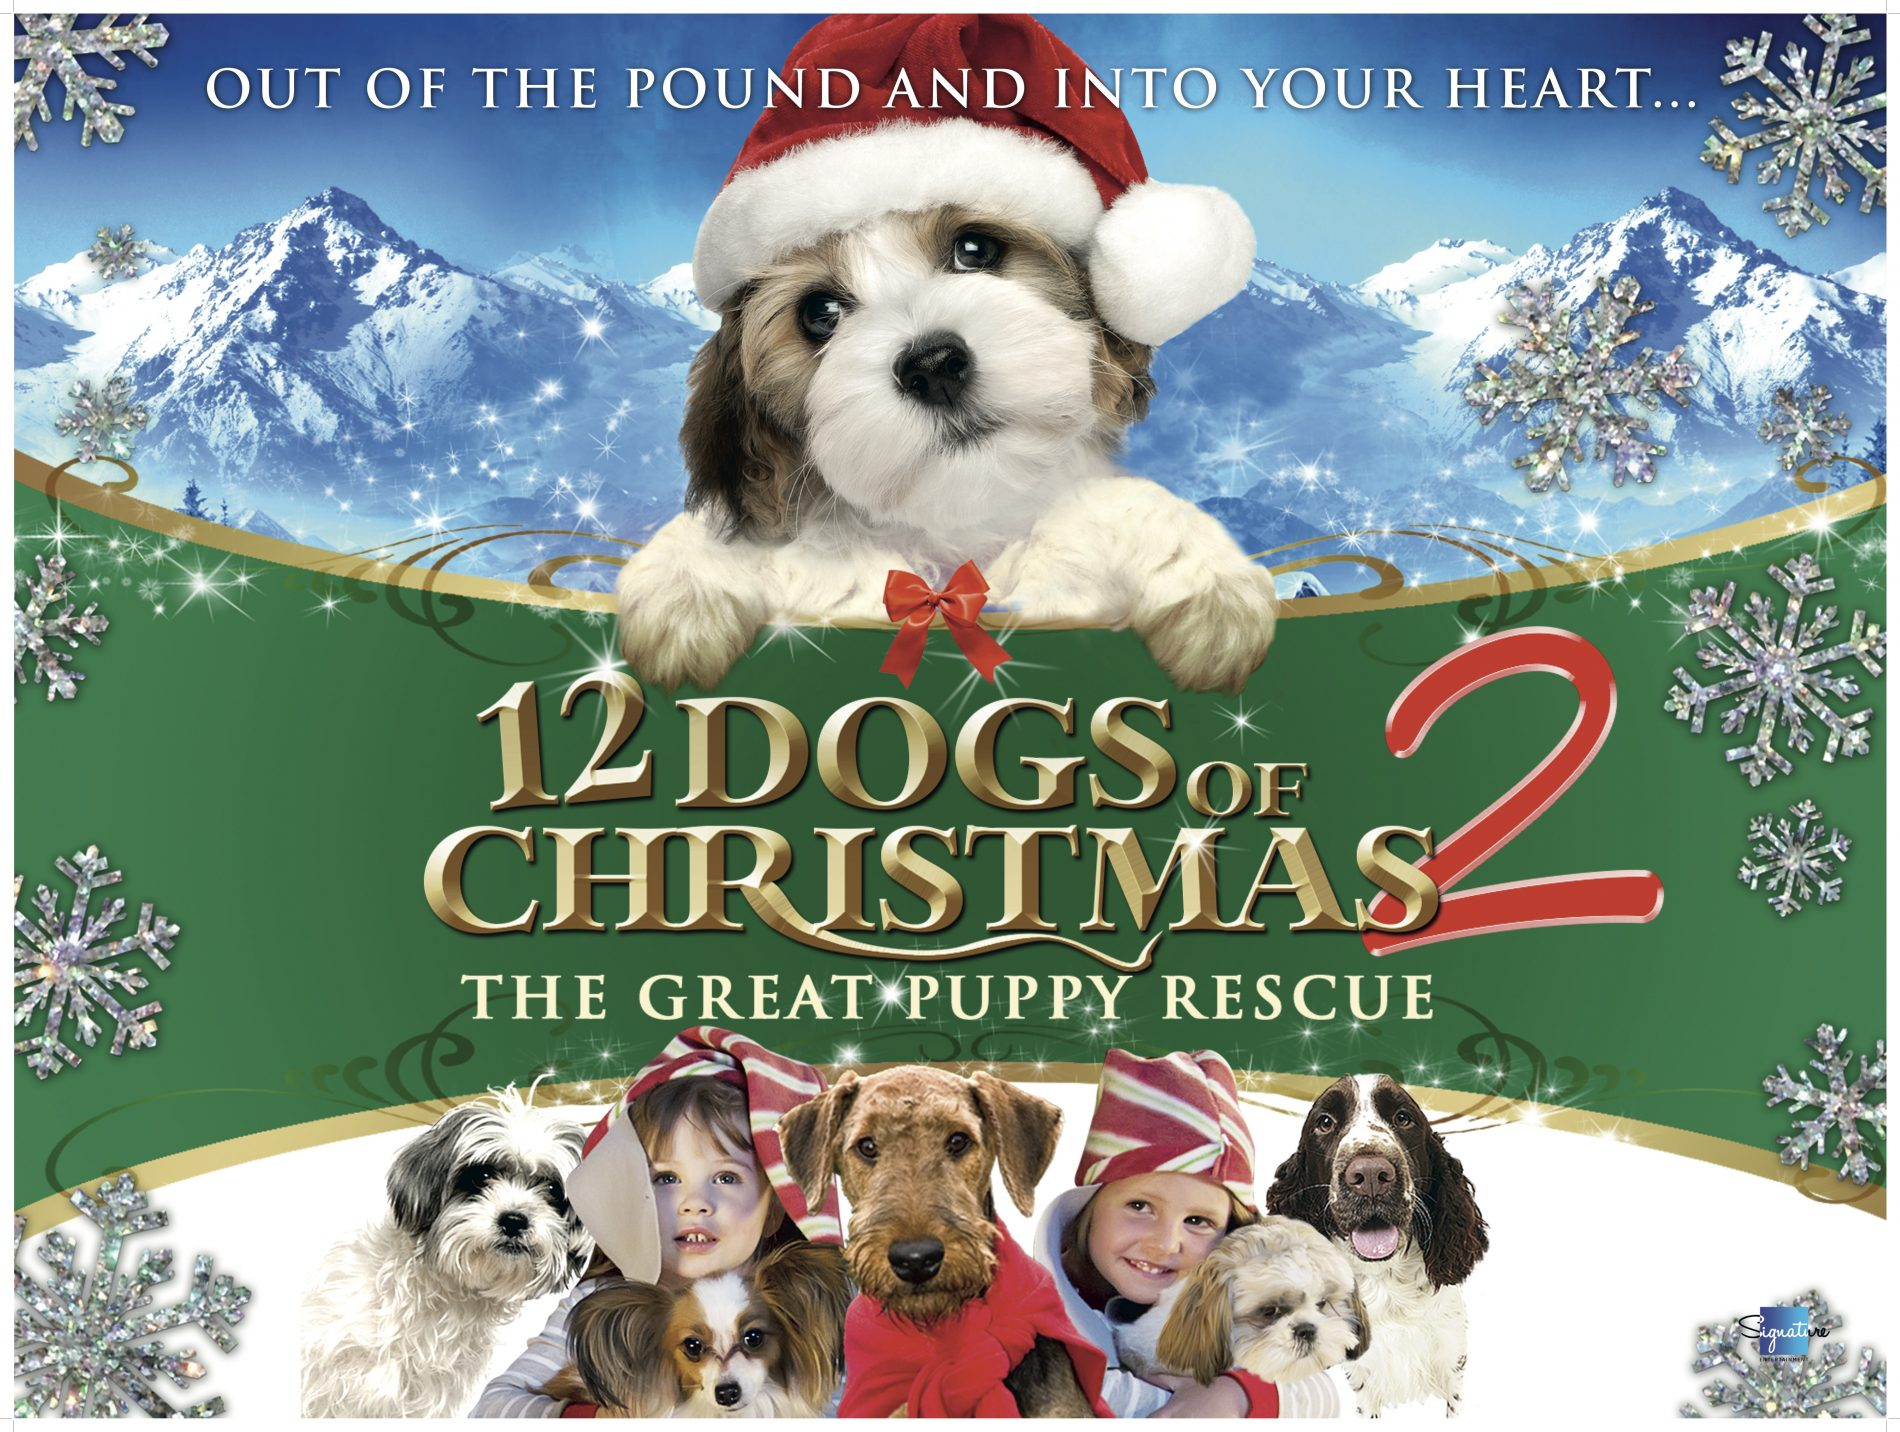 12 Dogs Of Christmas.Win A Family Ticket To The Exclusive Christmas Screening Of